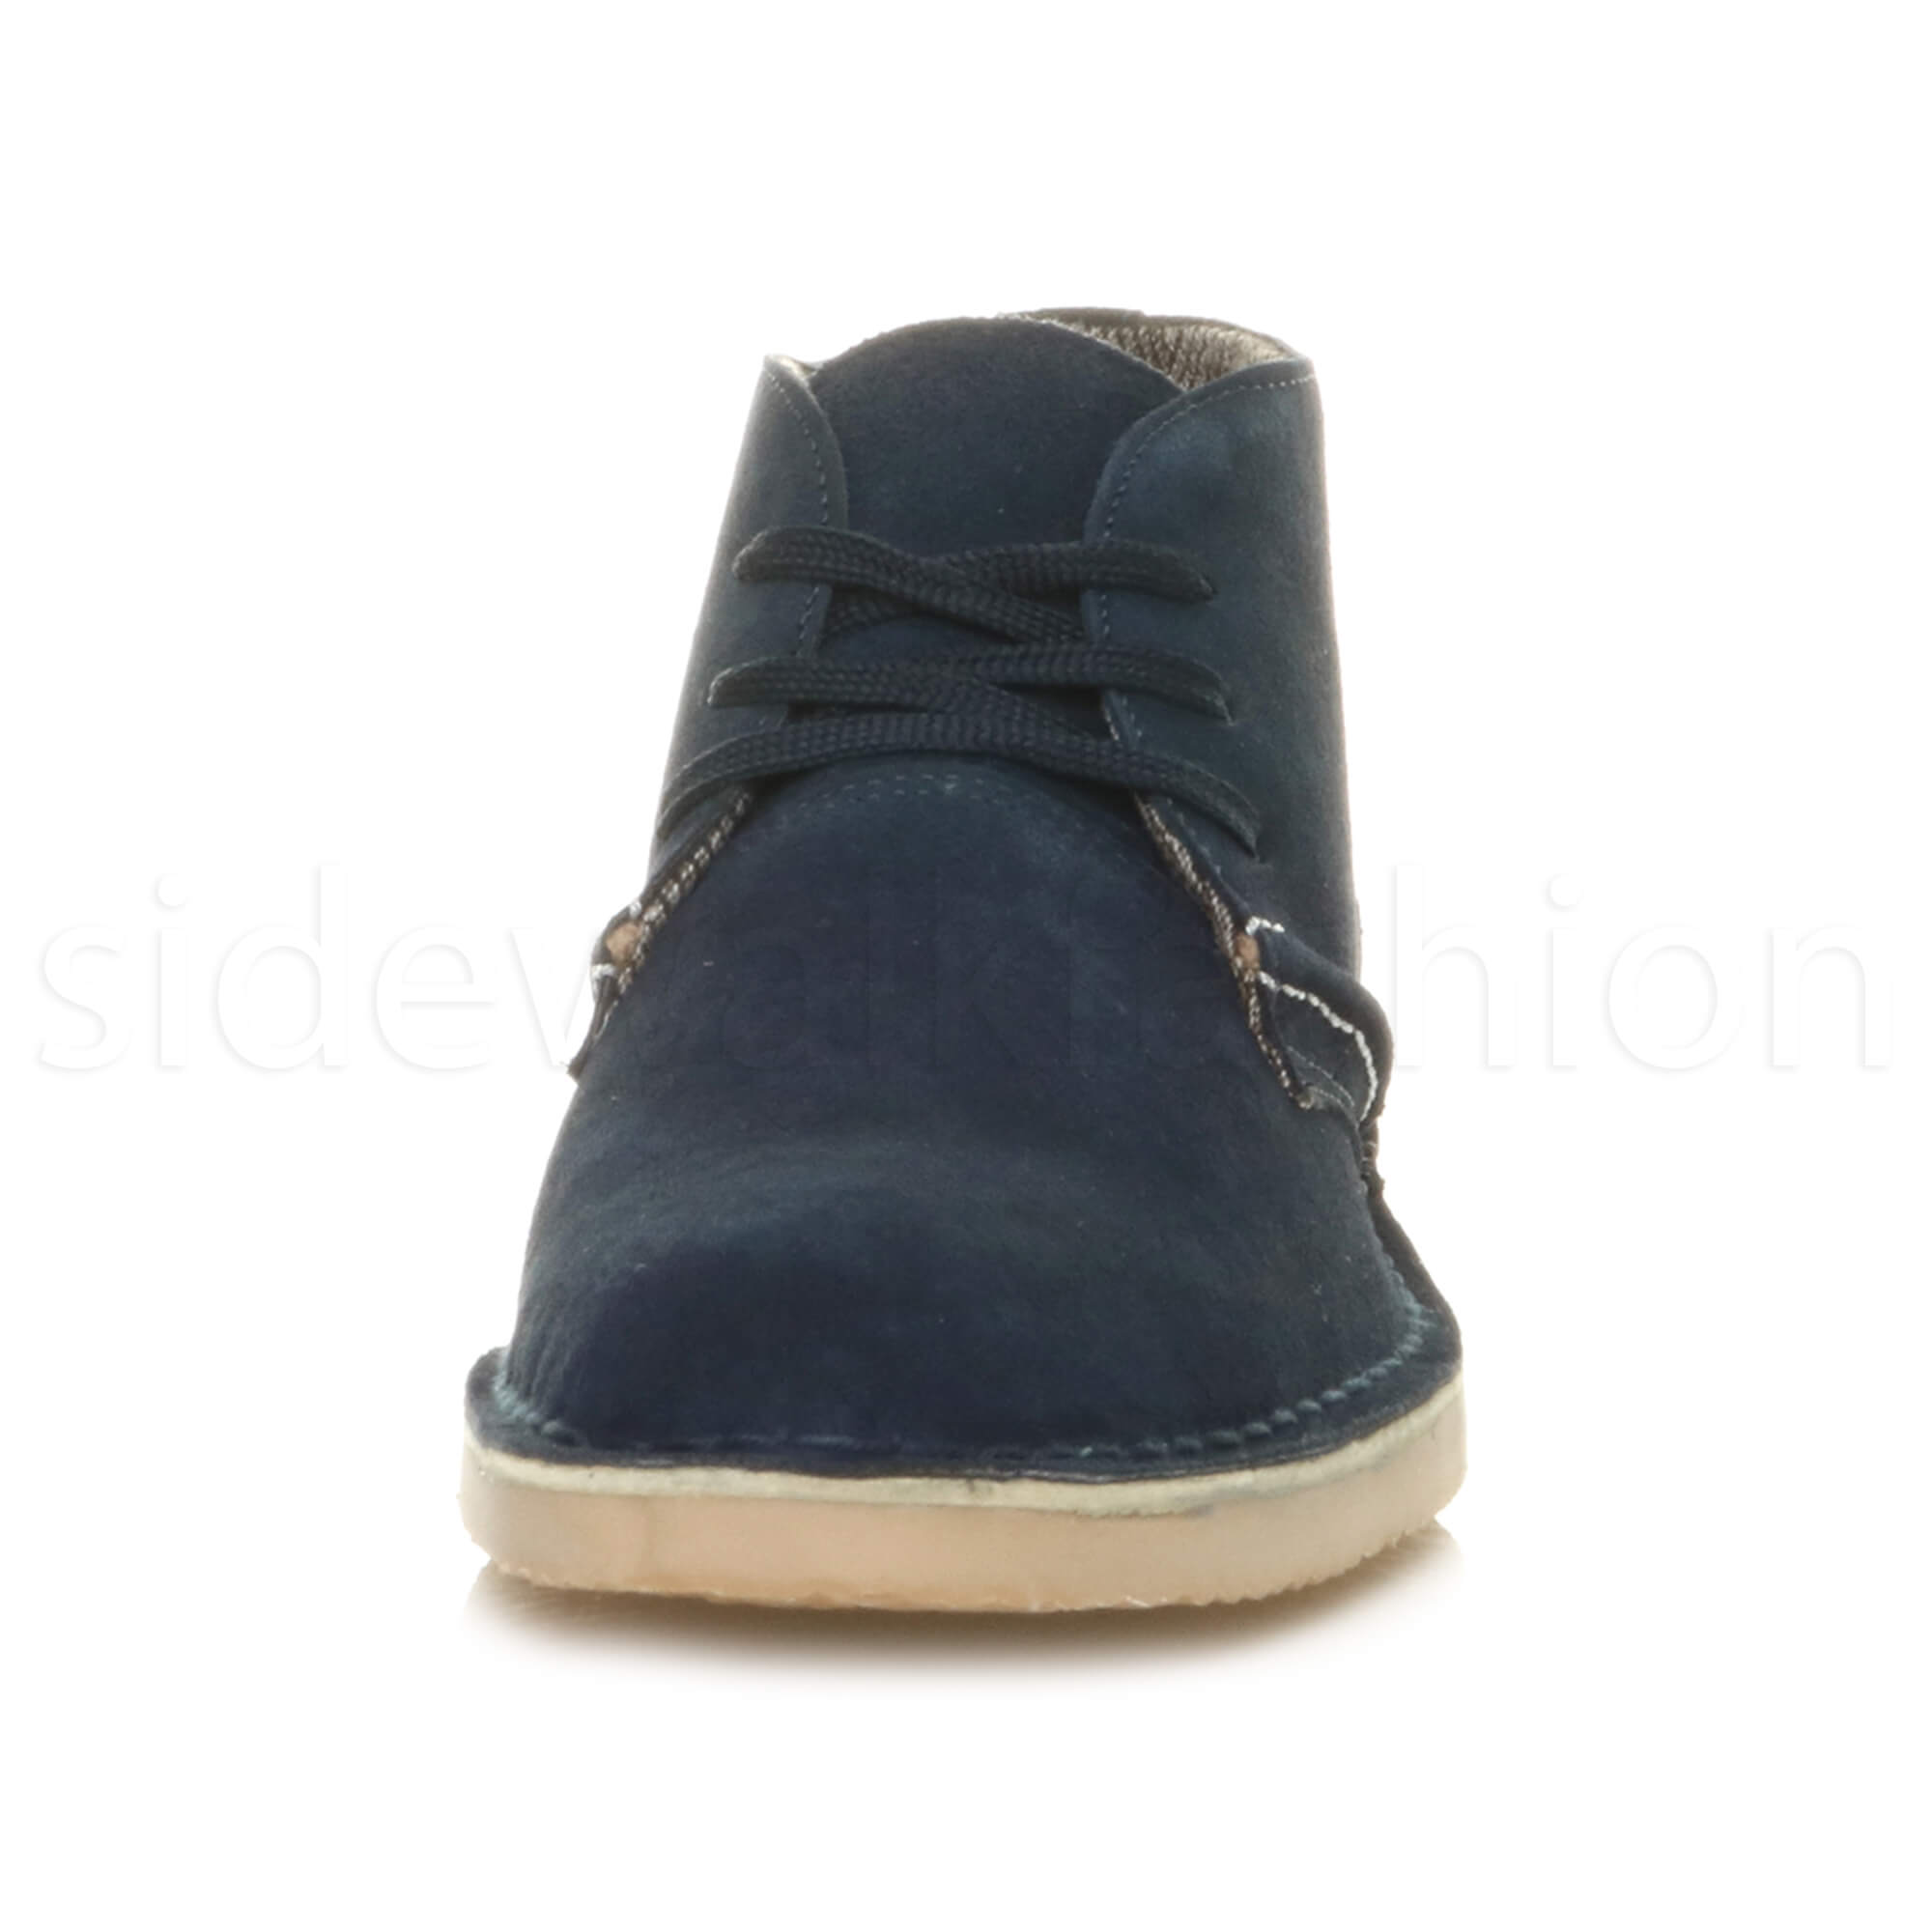 Mens-lace-up-rubber-sole-suede-ankle-chukka-desert-boots-classic-shoes-size thumbnail 28